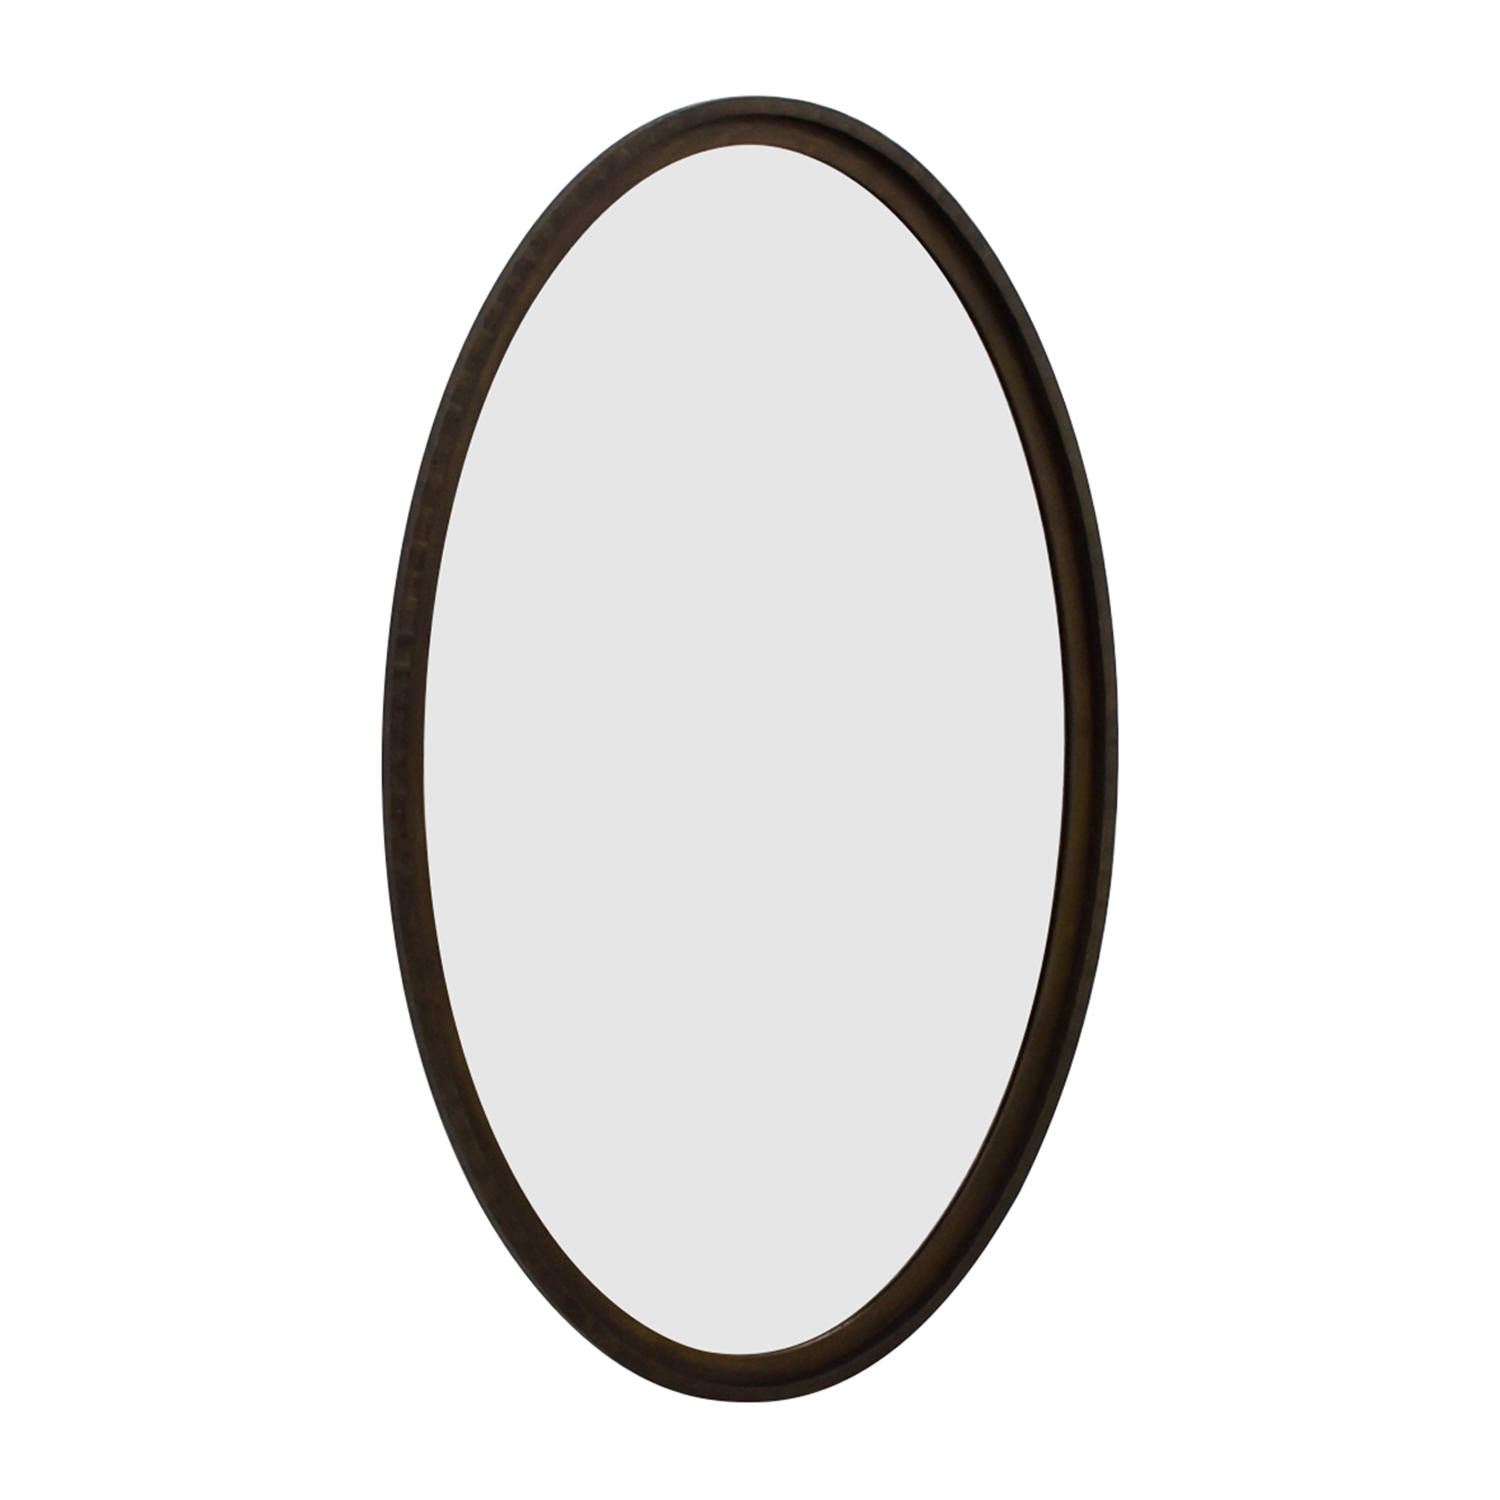 Crate & Barrel Crate & Barrel Oval Wood Framed Wall Mirror dimensions